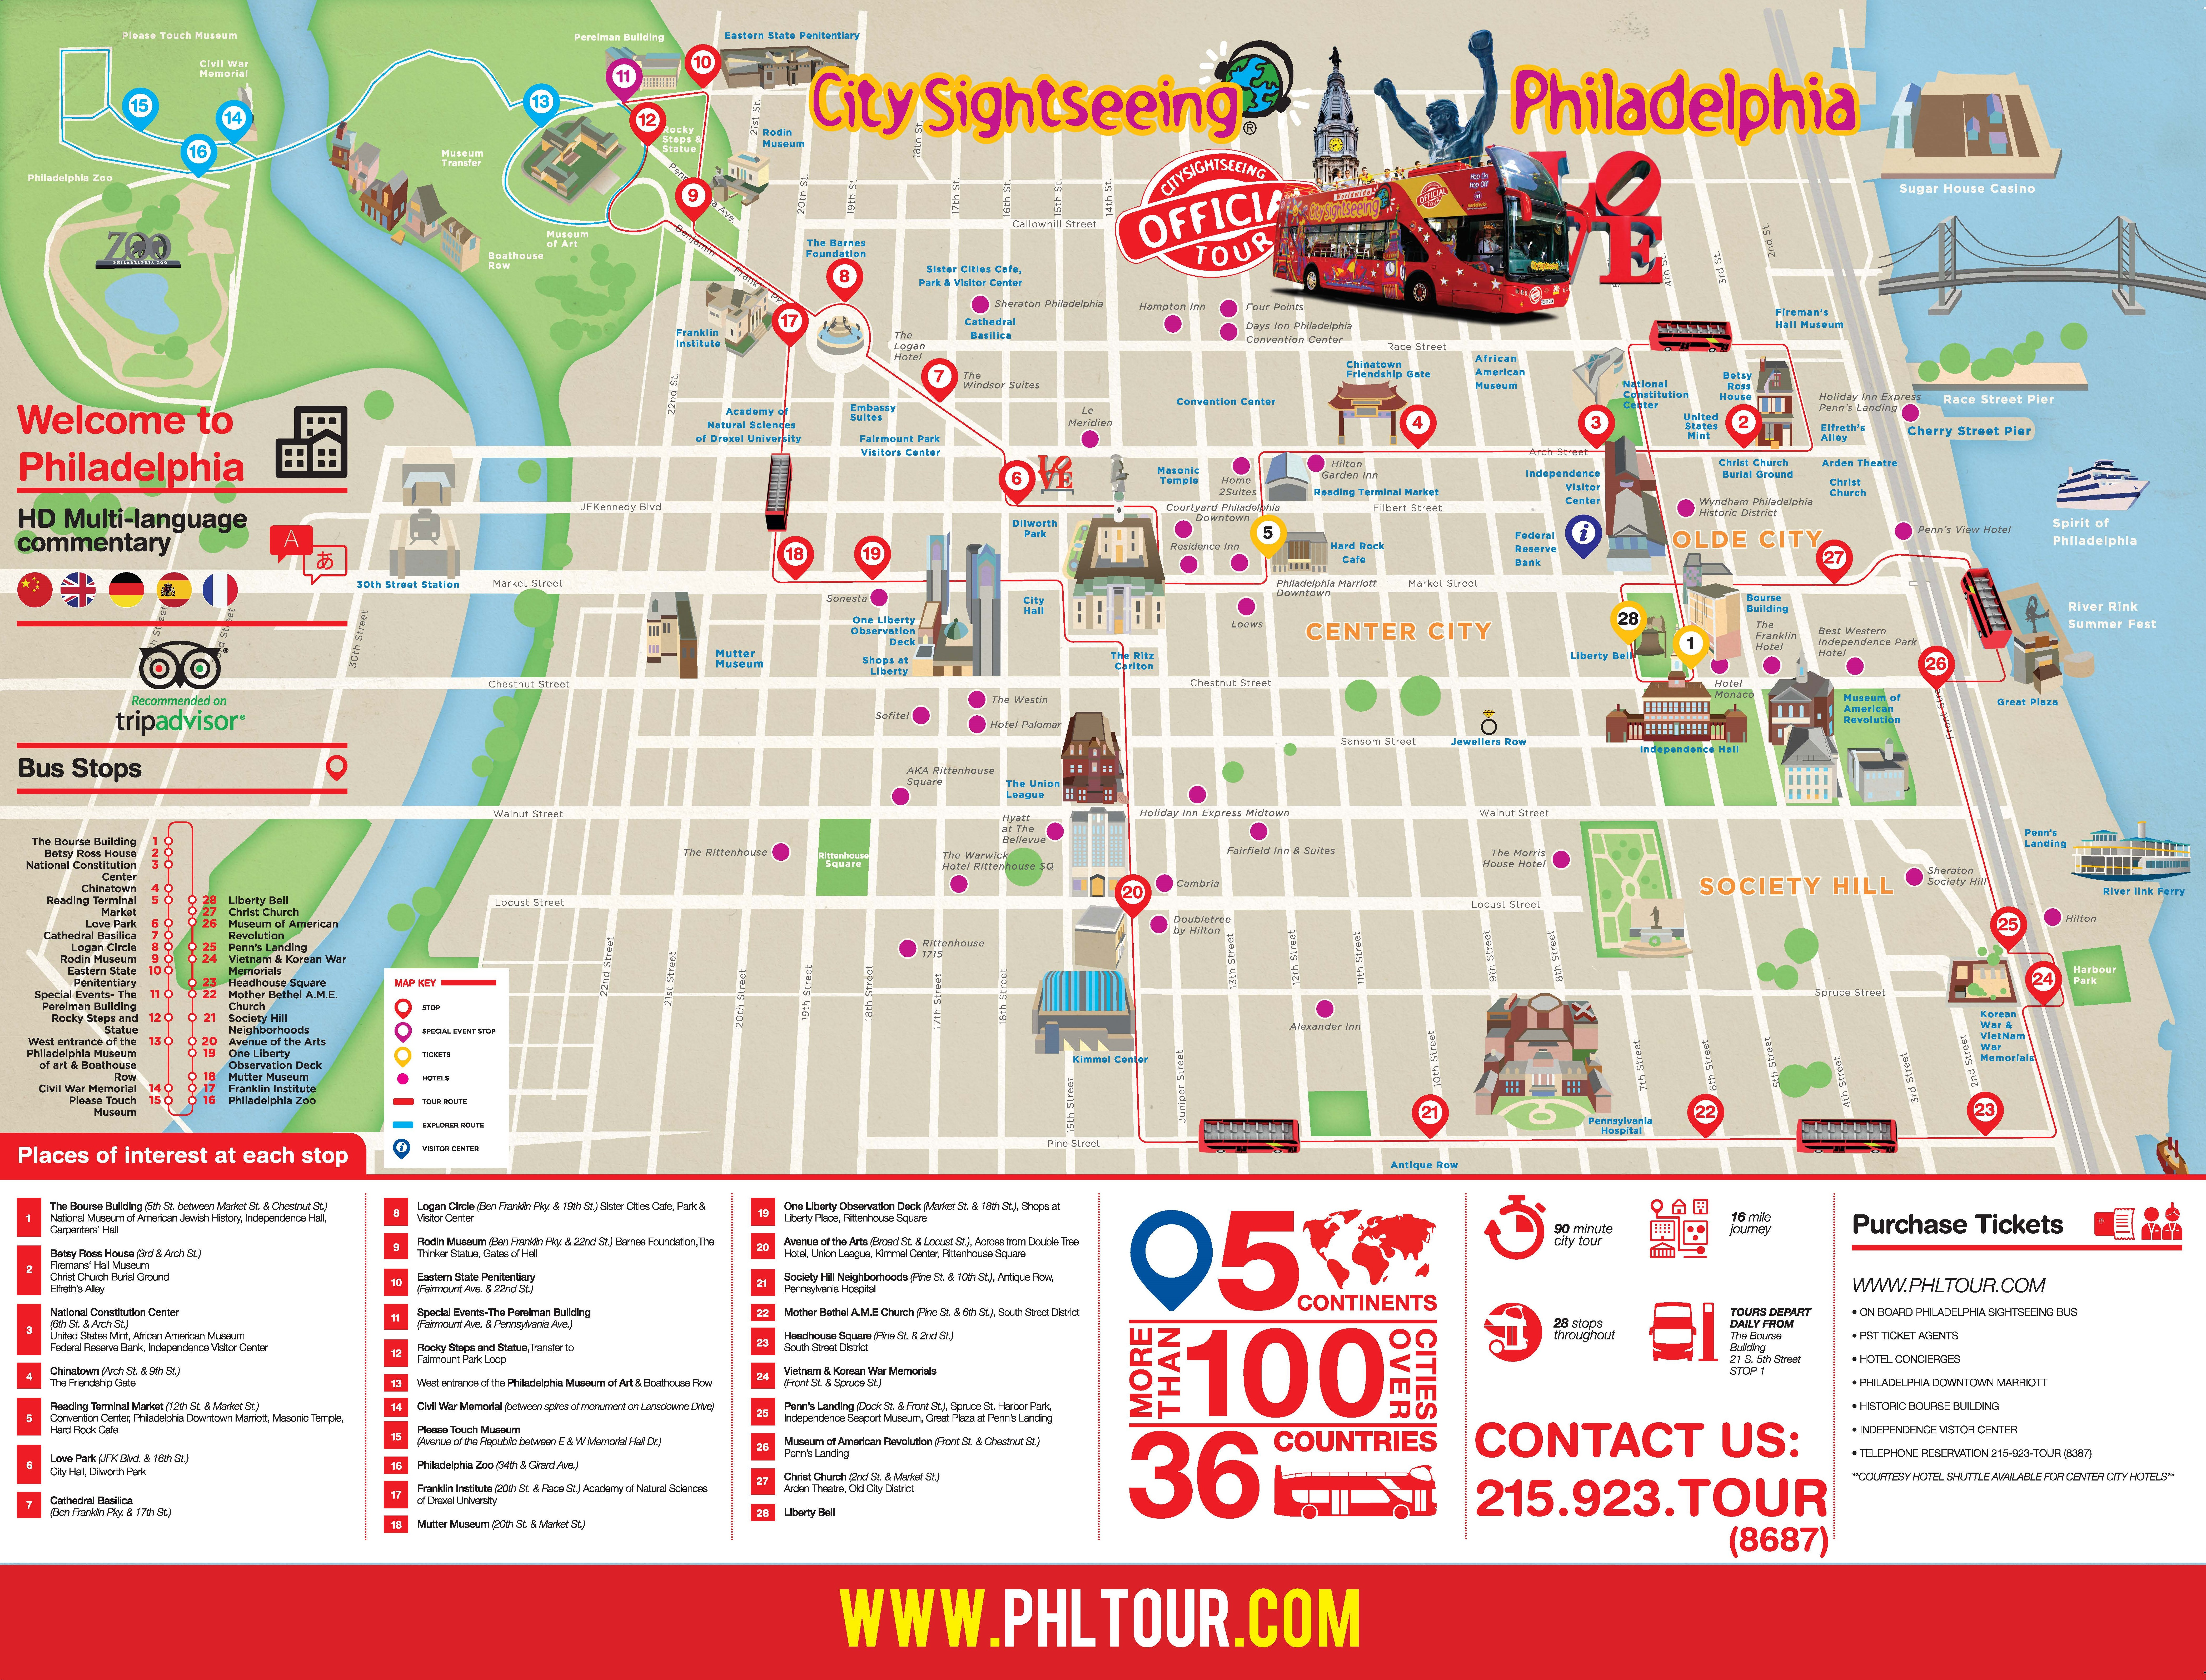 It is an image of Printable Map of Philadelphia with location